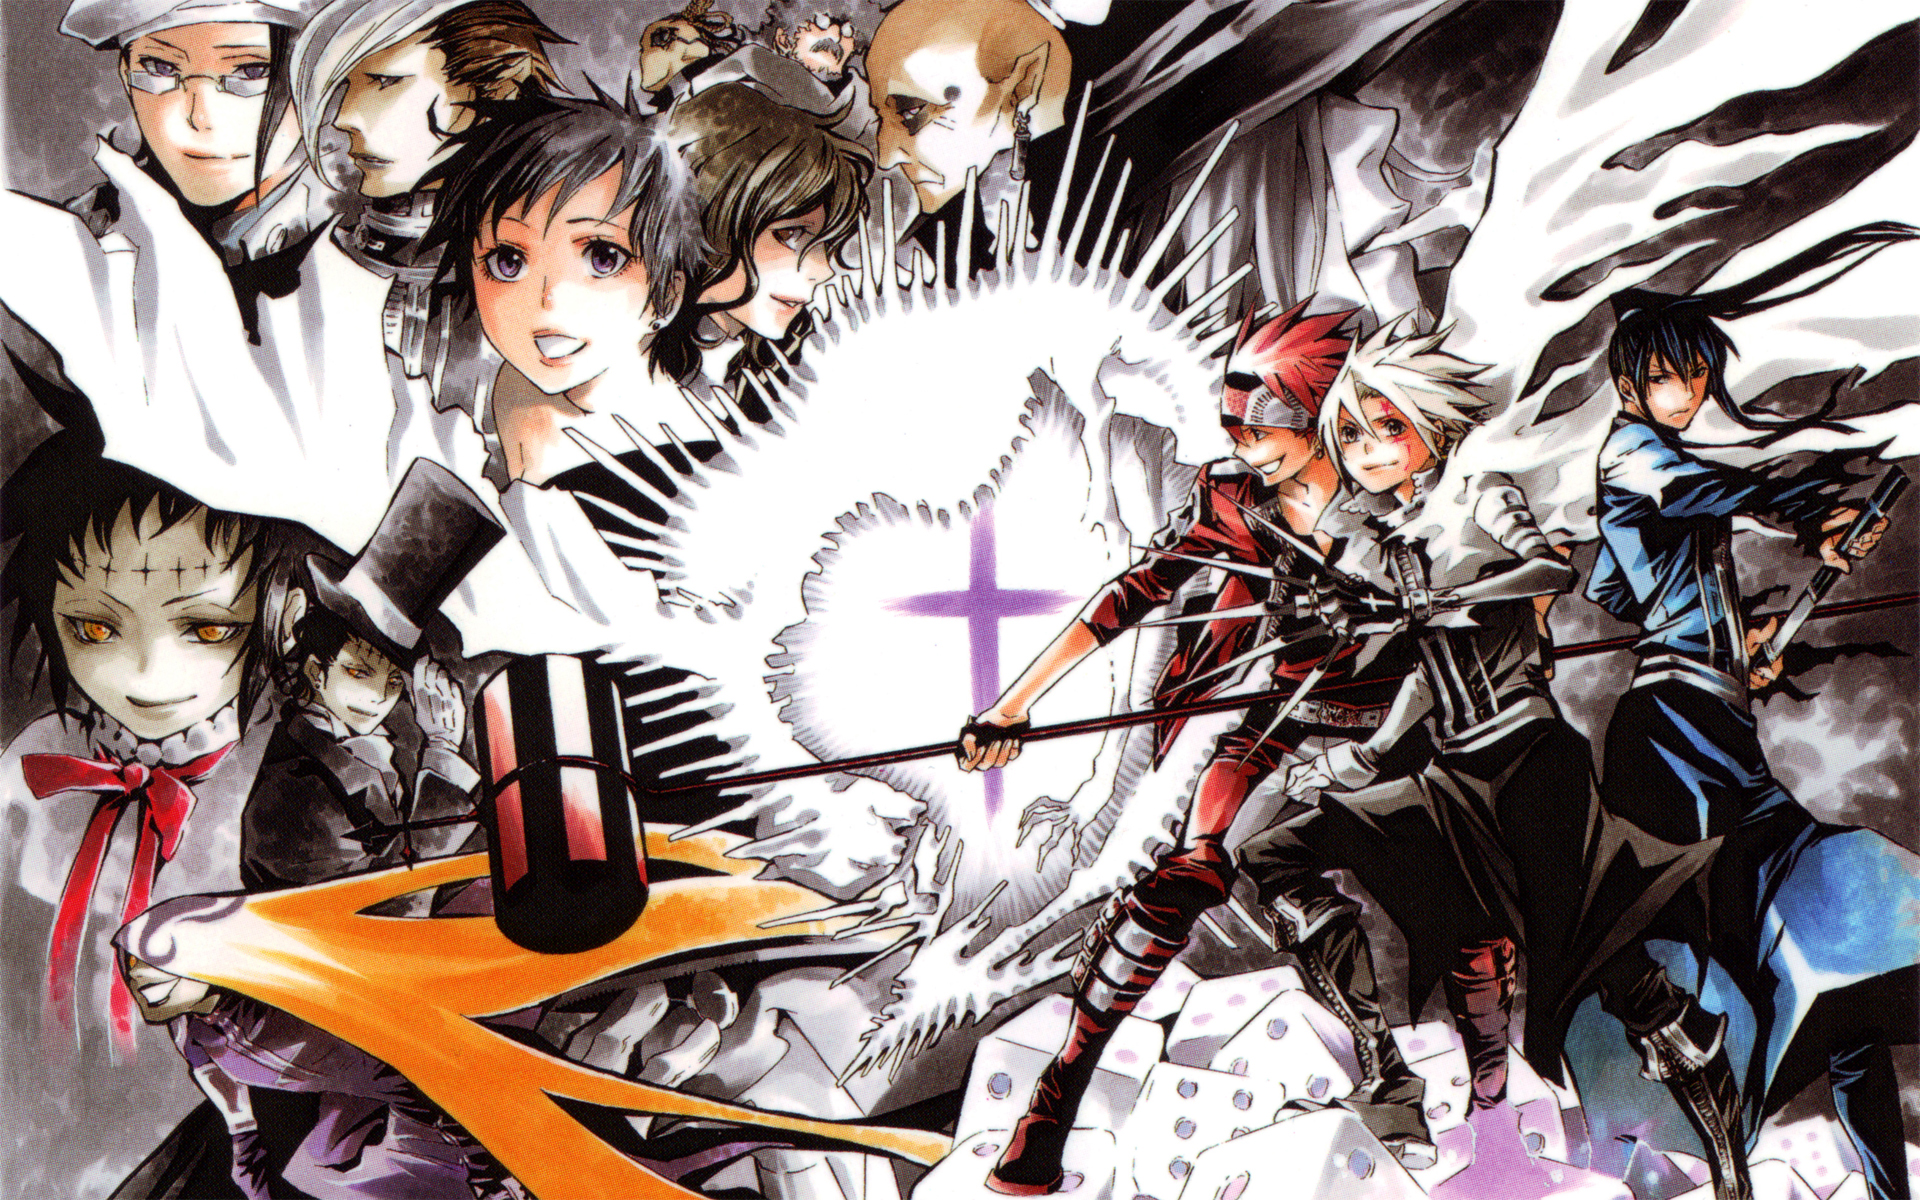 D gray man renote - D gray man images ...